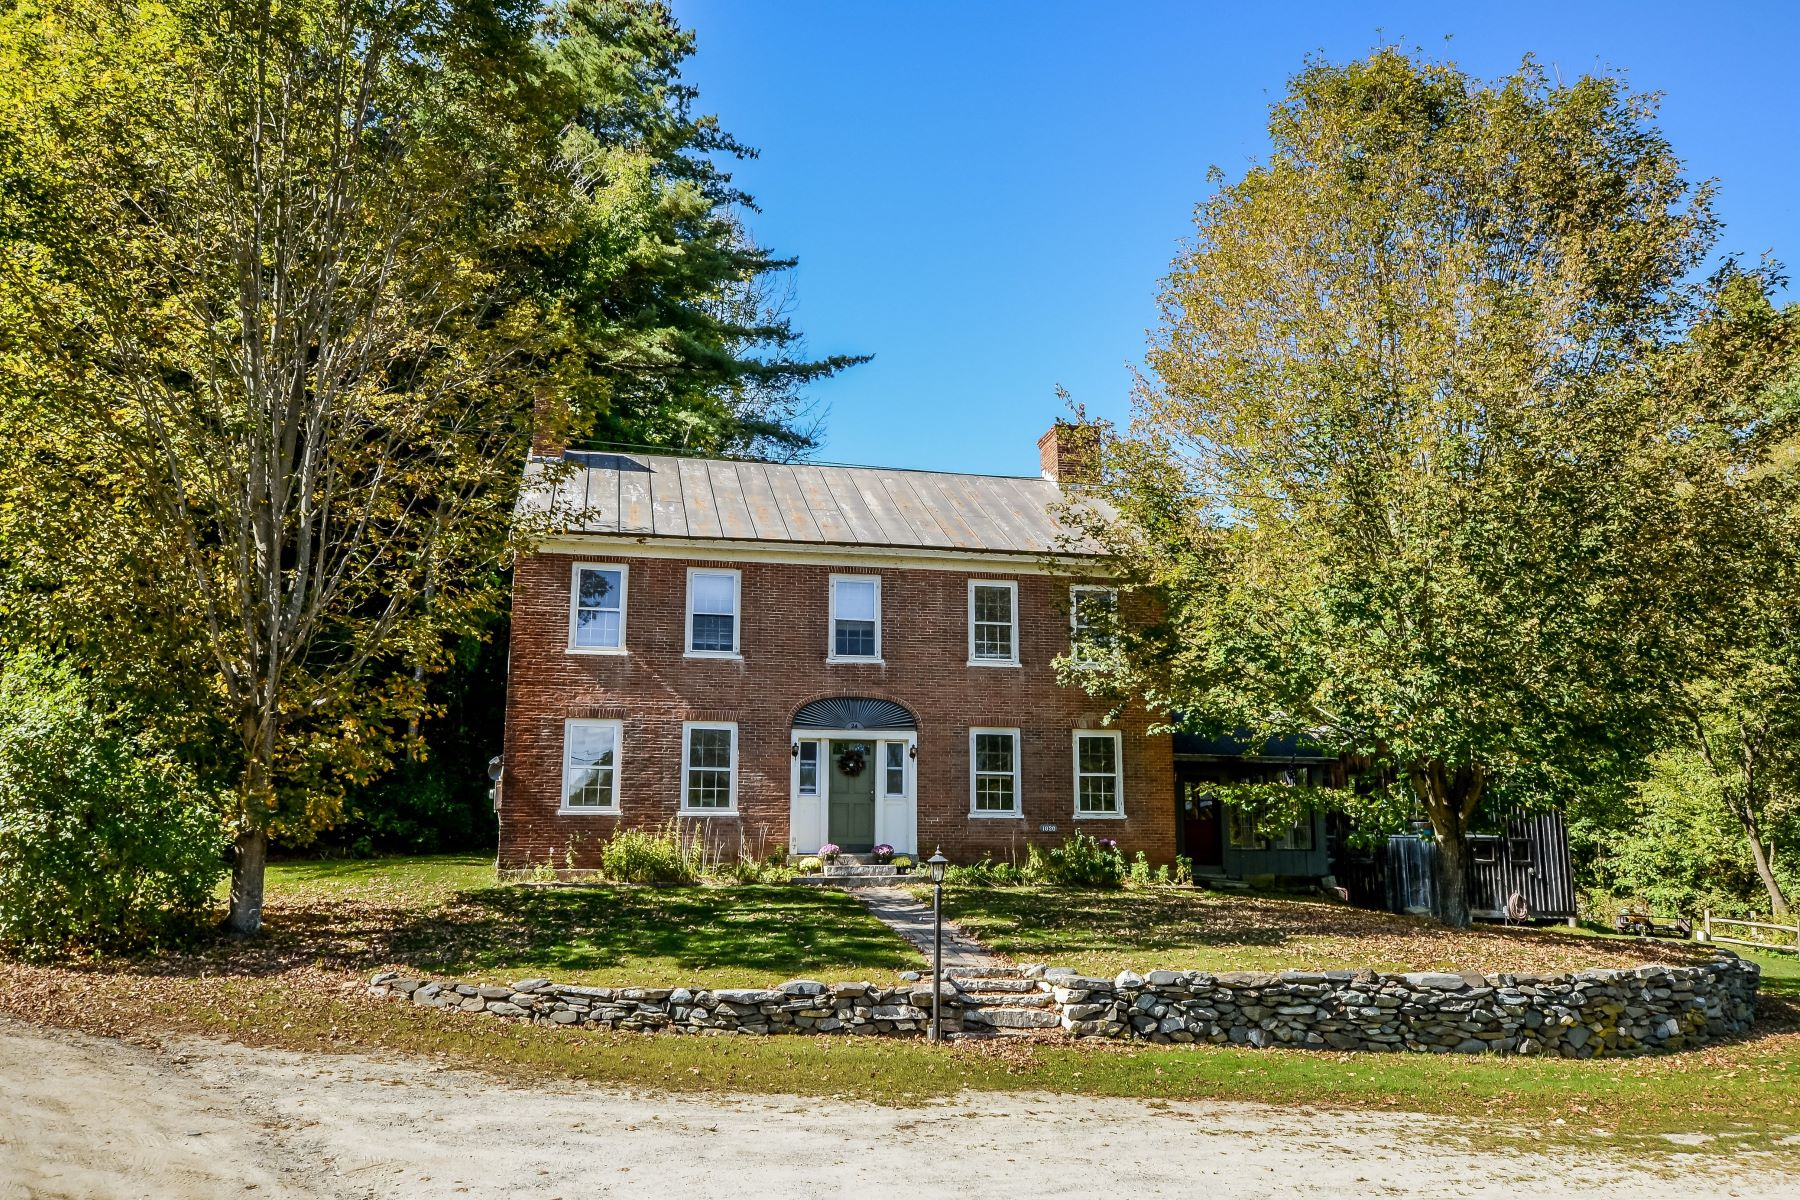 Single Family Home for Sale at Updated 3 bedroom Colonial in Bradford 24 Roaring Brook, Bradford, Vermont, 05033 United States